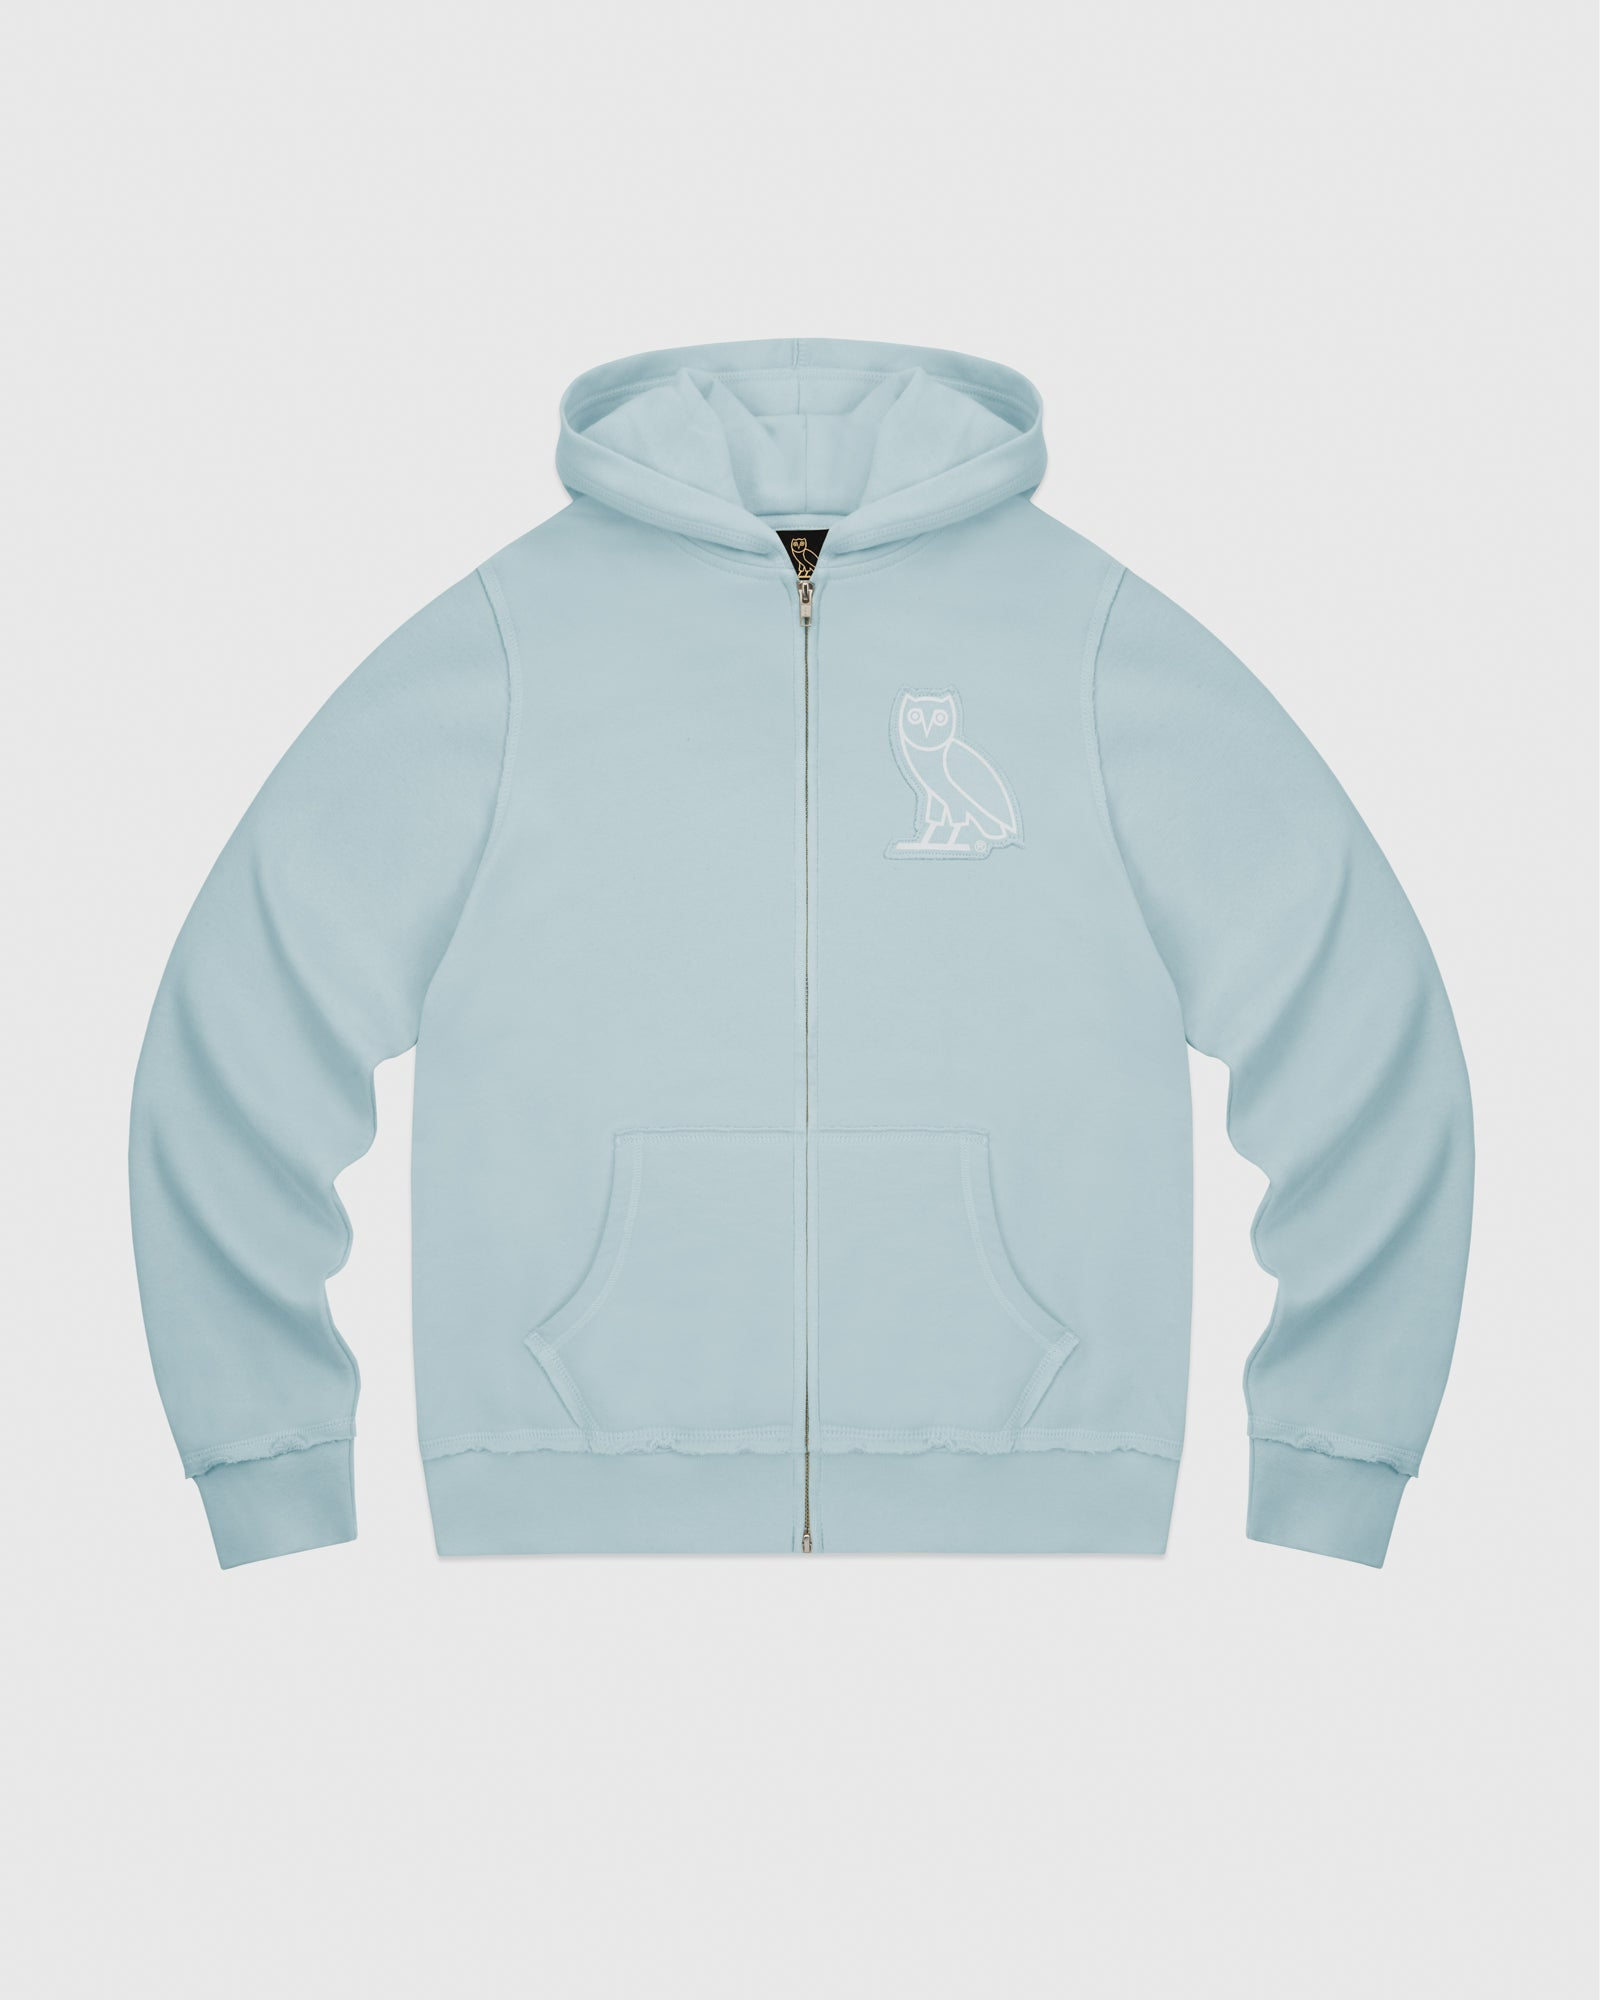 RAW EDGE FRENCH TERRY ZIP HOODIE - BABY BLUE IMAGE #1